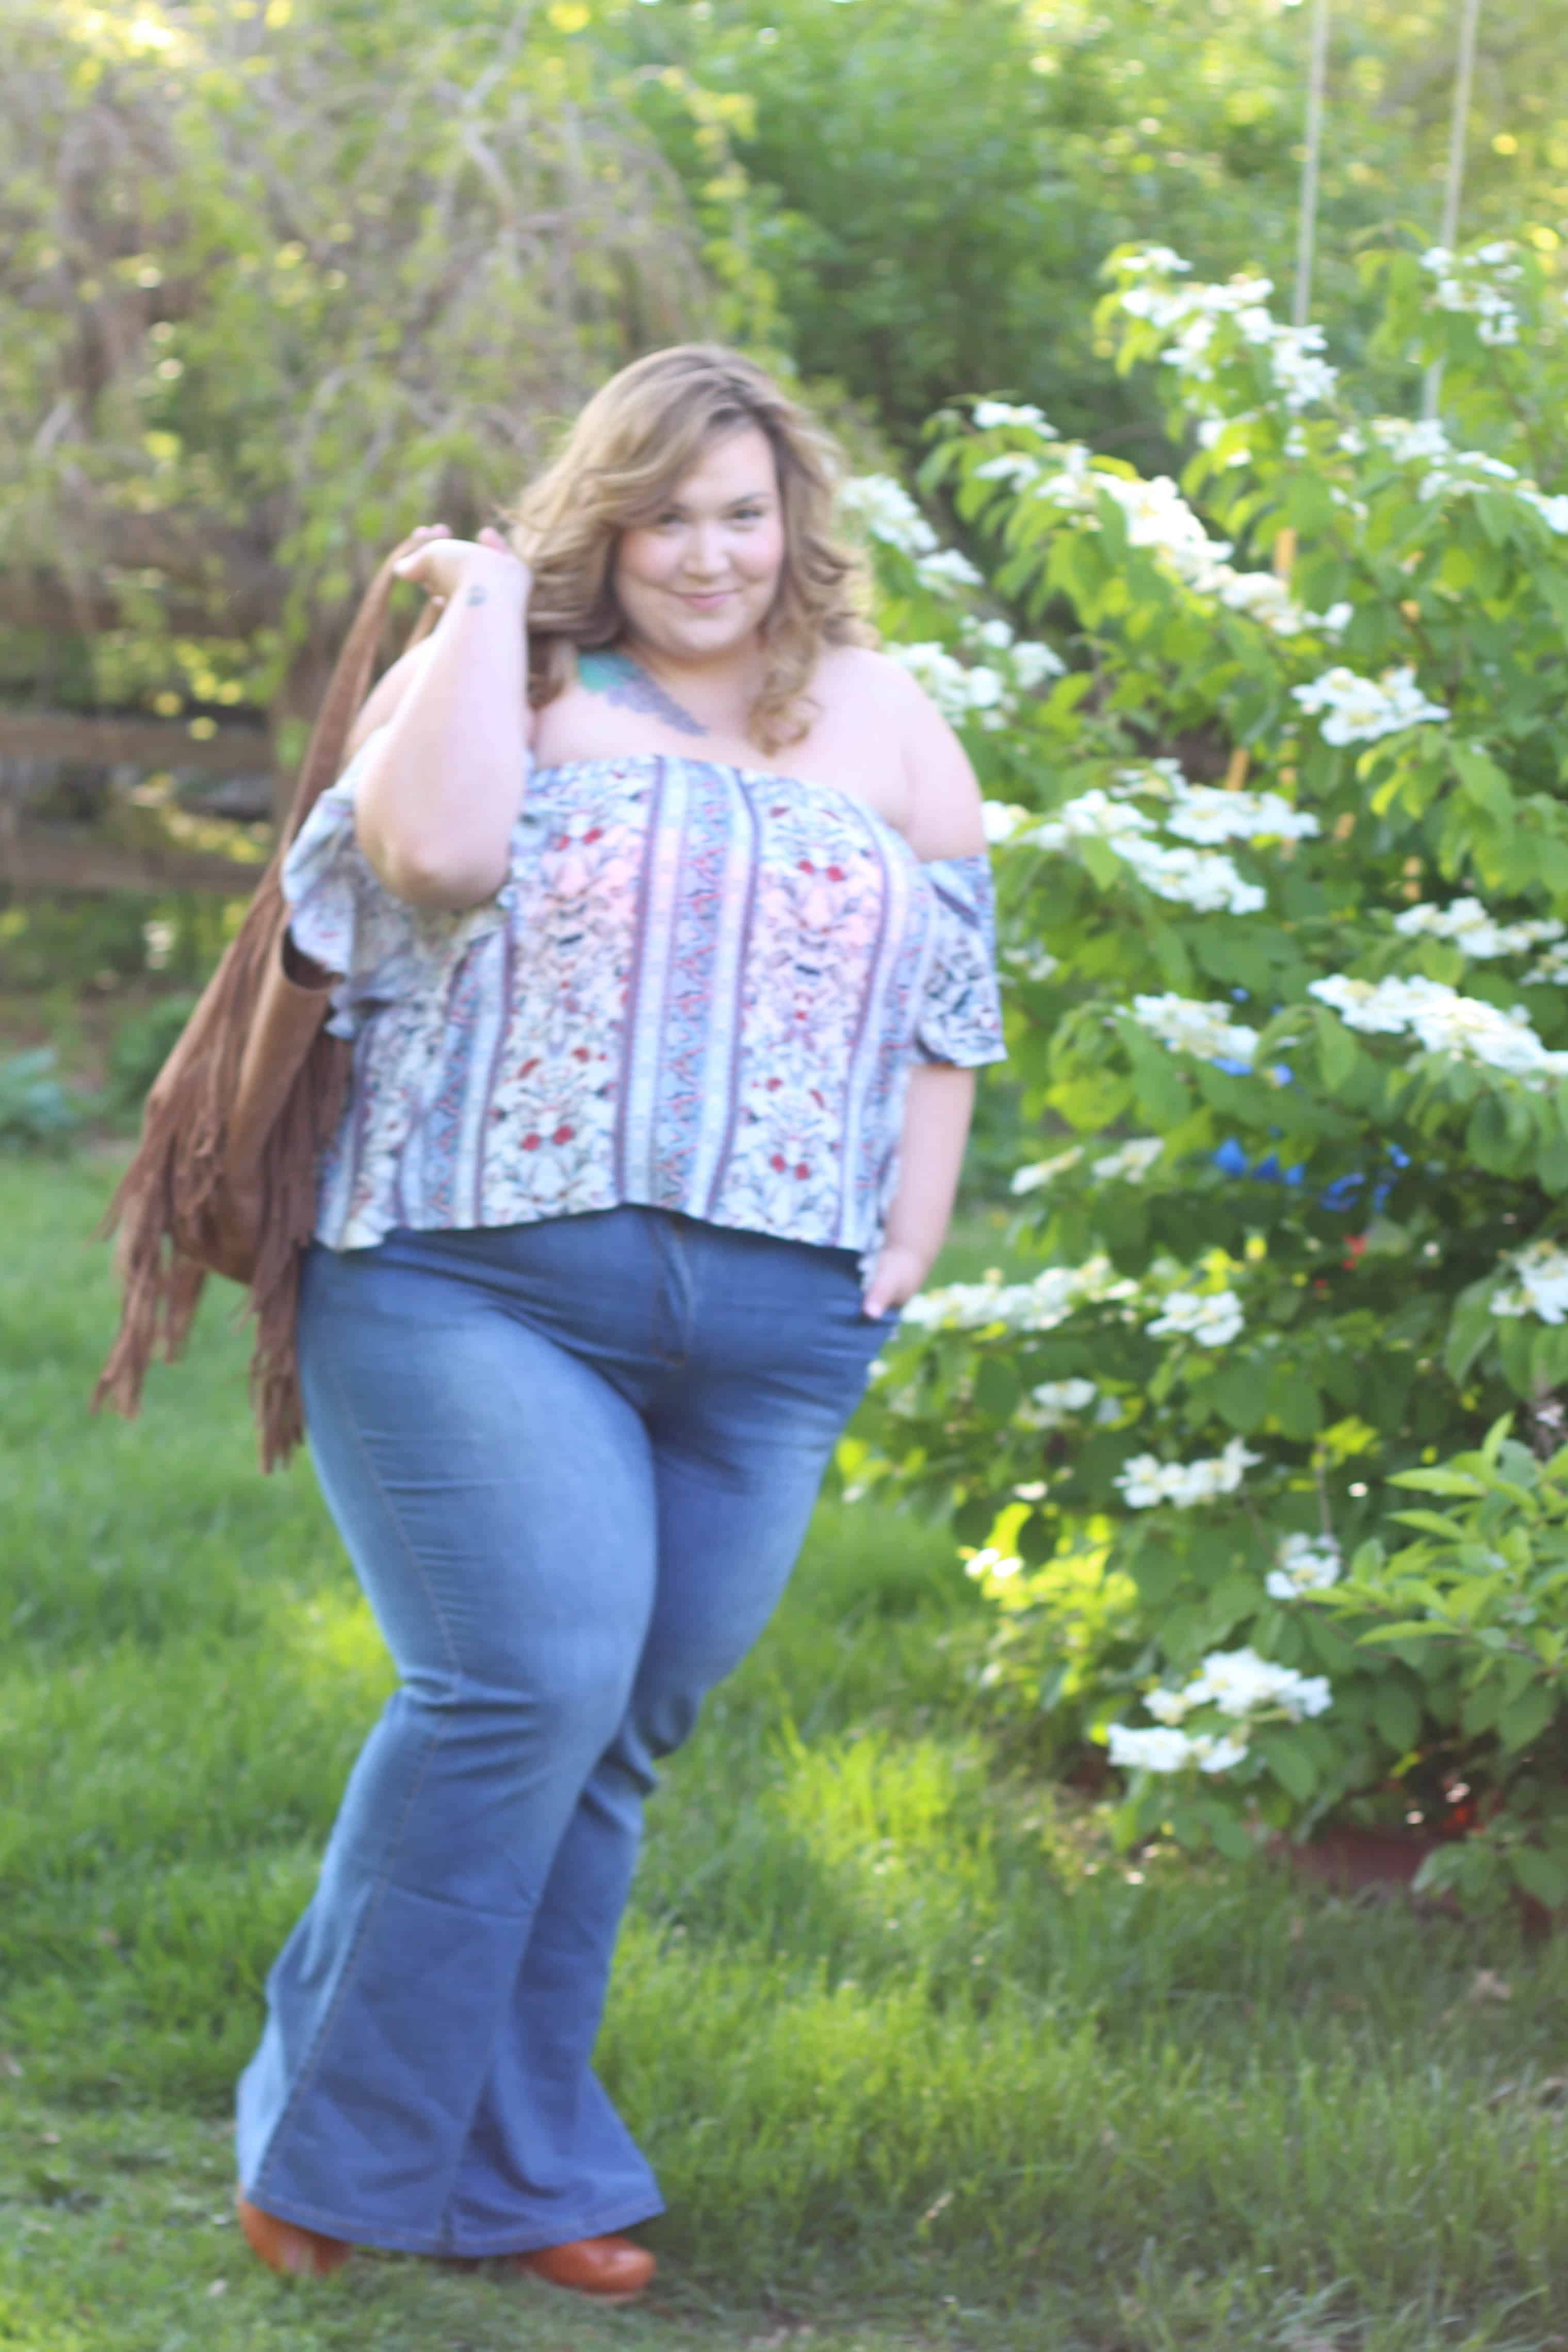 single bbw women in locust hill Mizpah health care center located in locust hill va with service to surrounding cities, is an nursing care facility call 804-758-5260 to get in touch with the team.